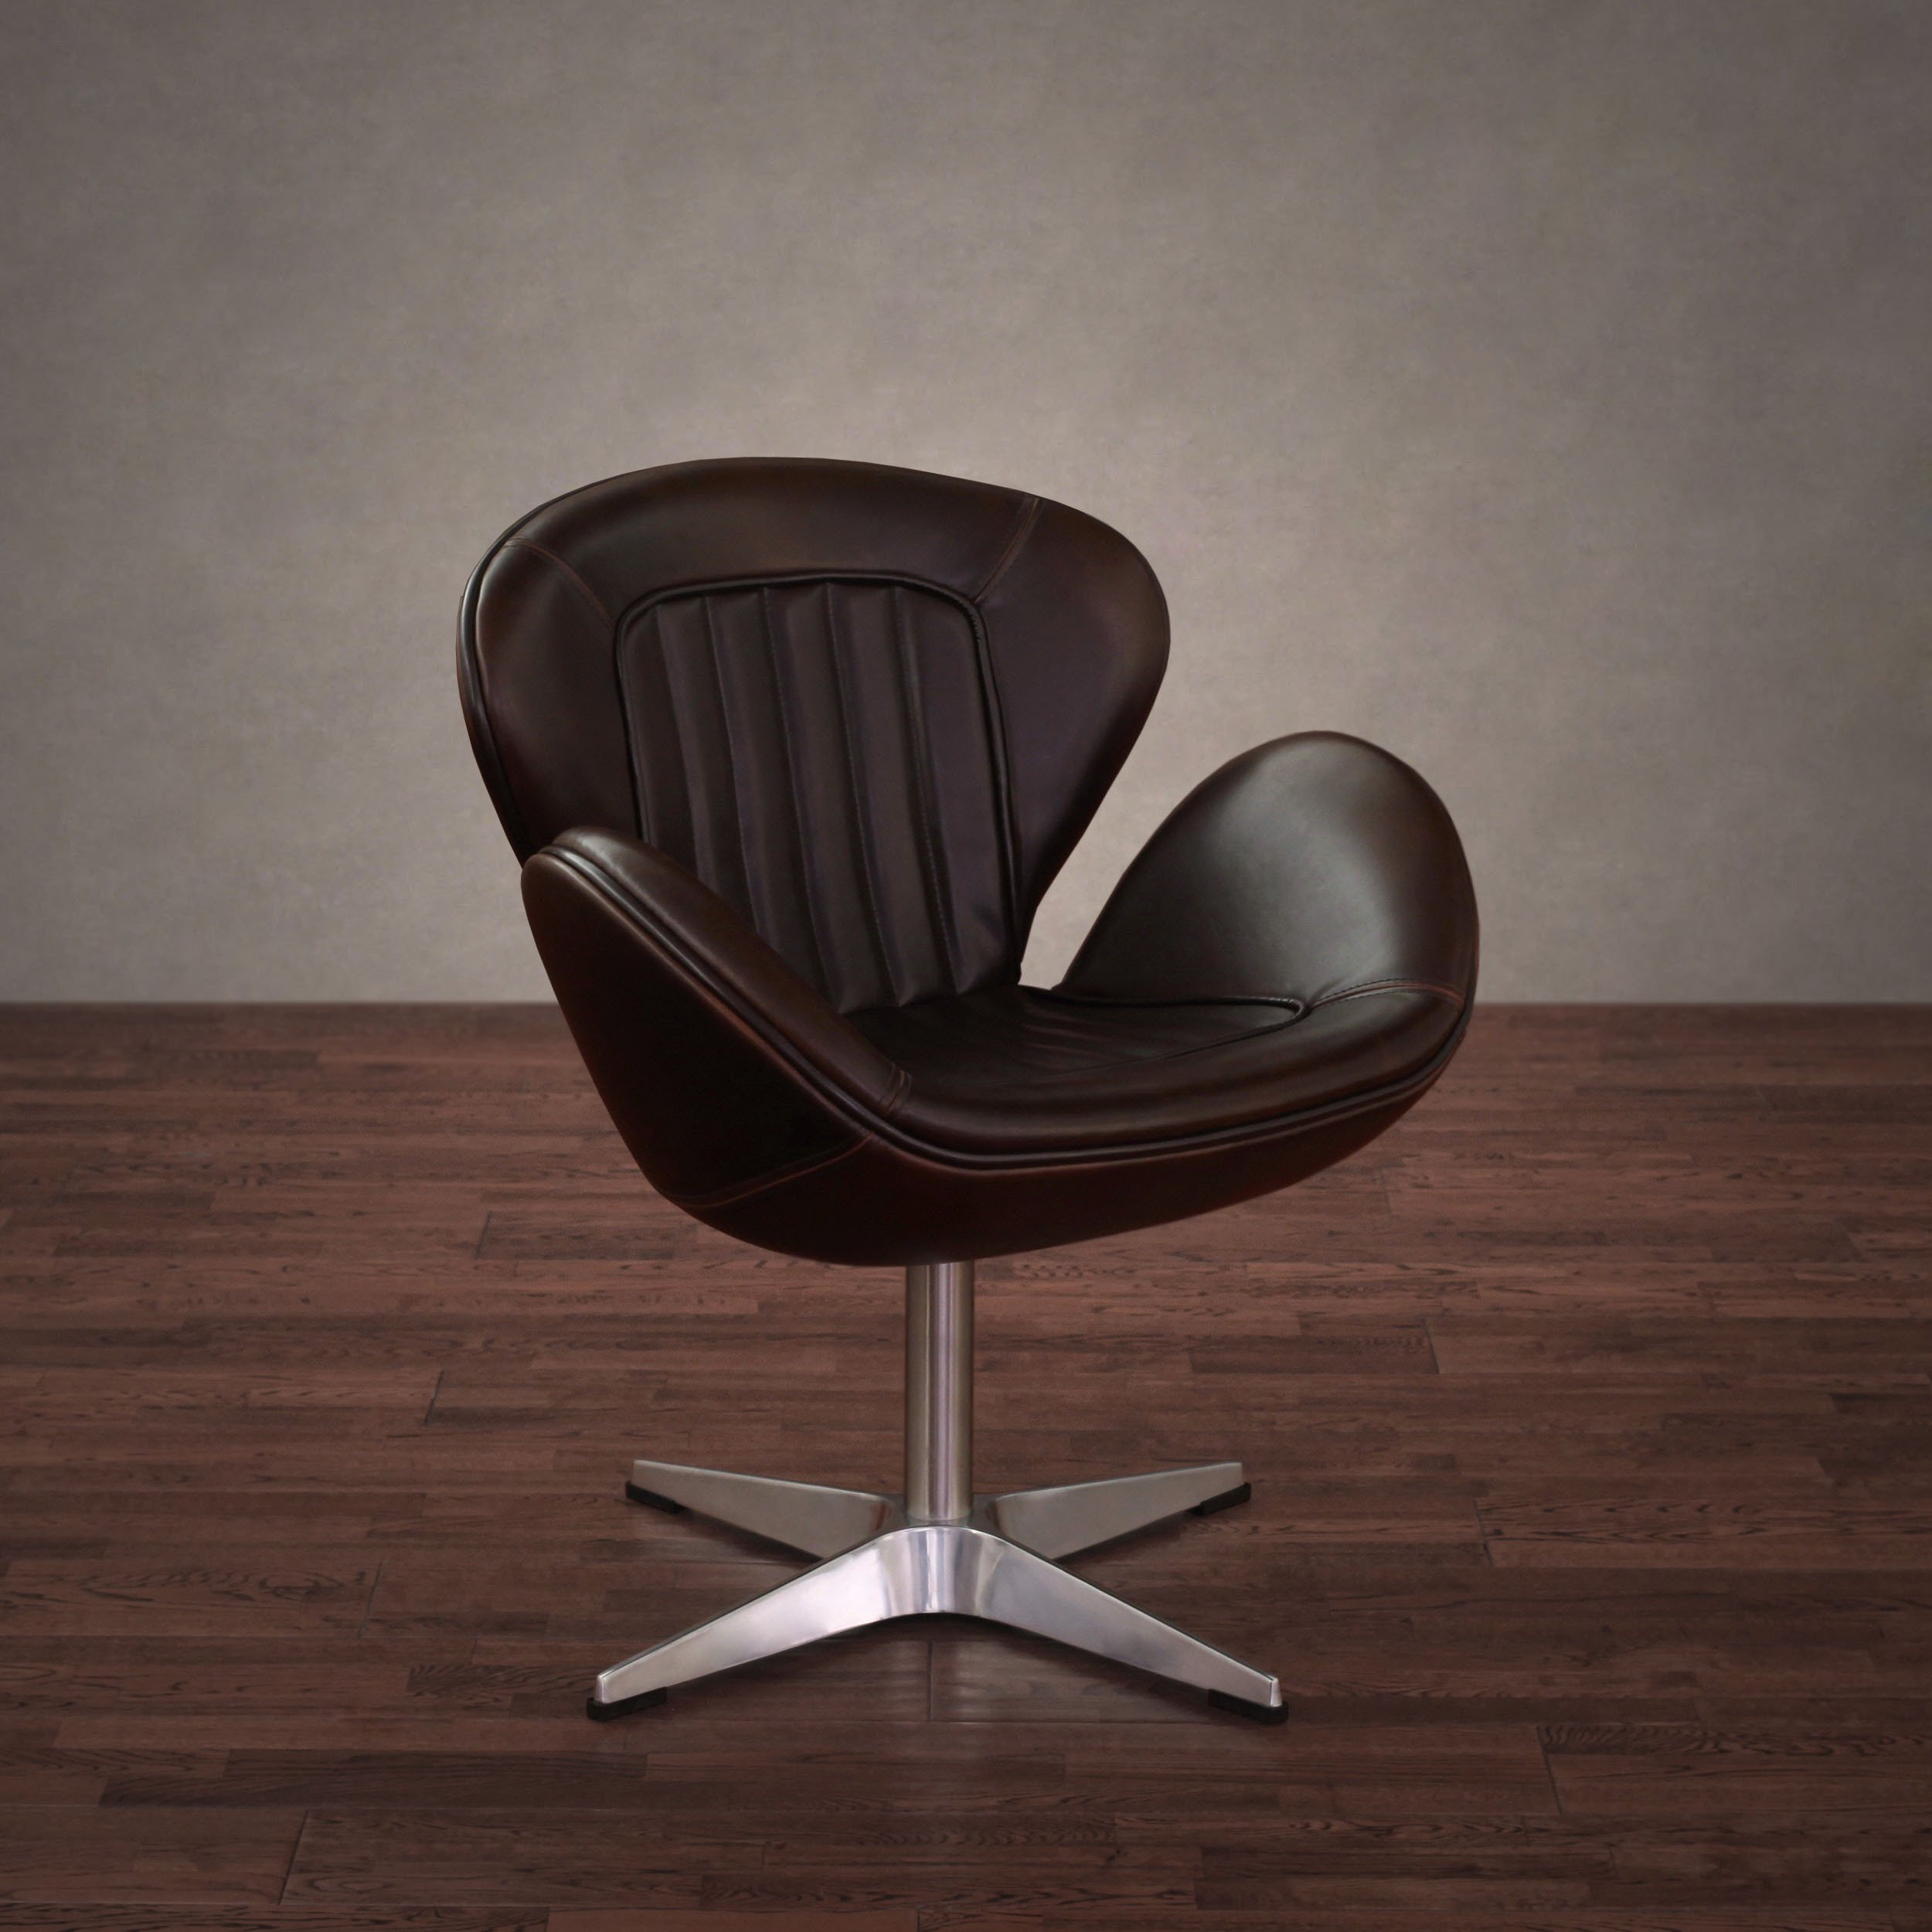 Shop Amelia Vintage Tobacco Leather Swivel Chair – Free Shipping Regarding Swivel Tobacco Leather Chairs (View 2 of 20)